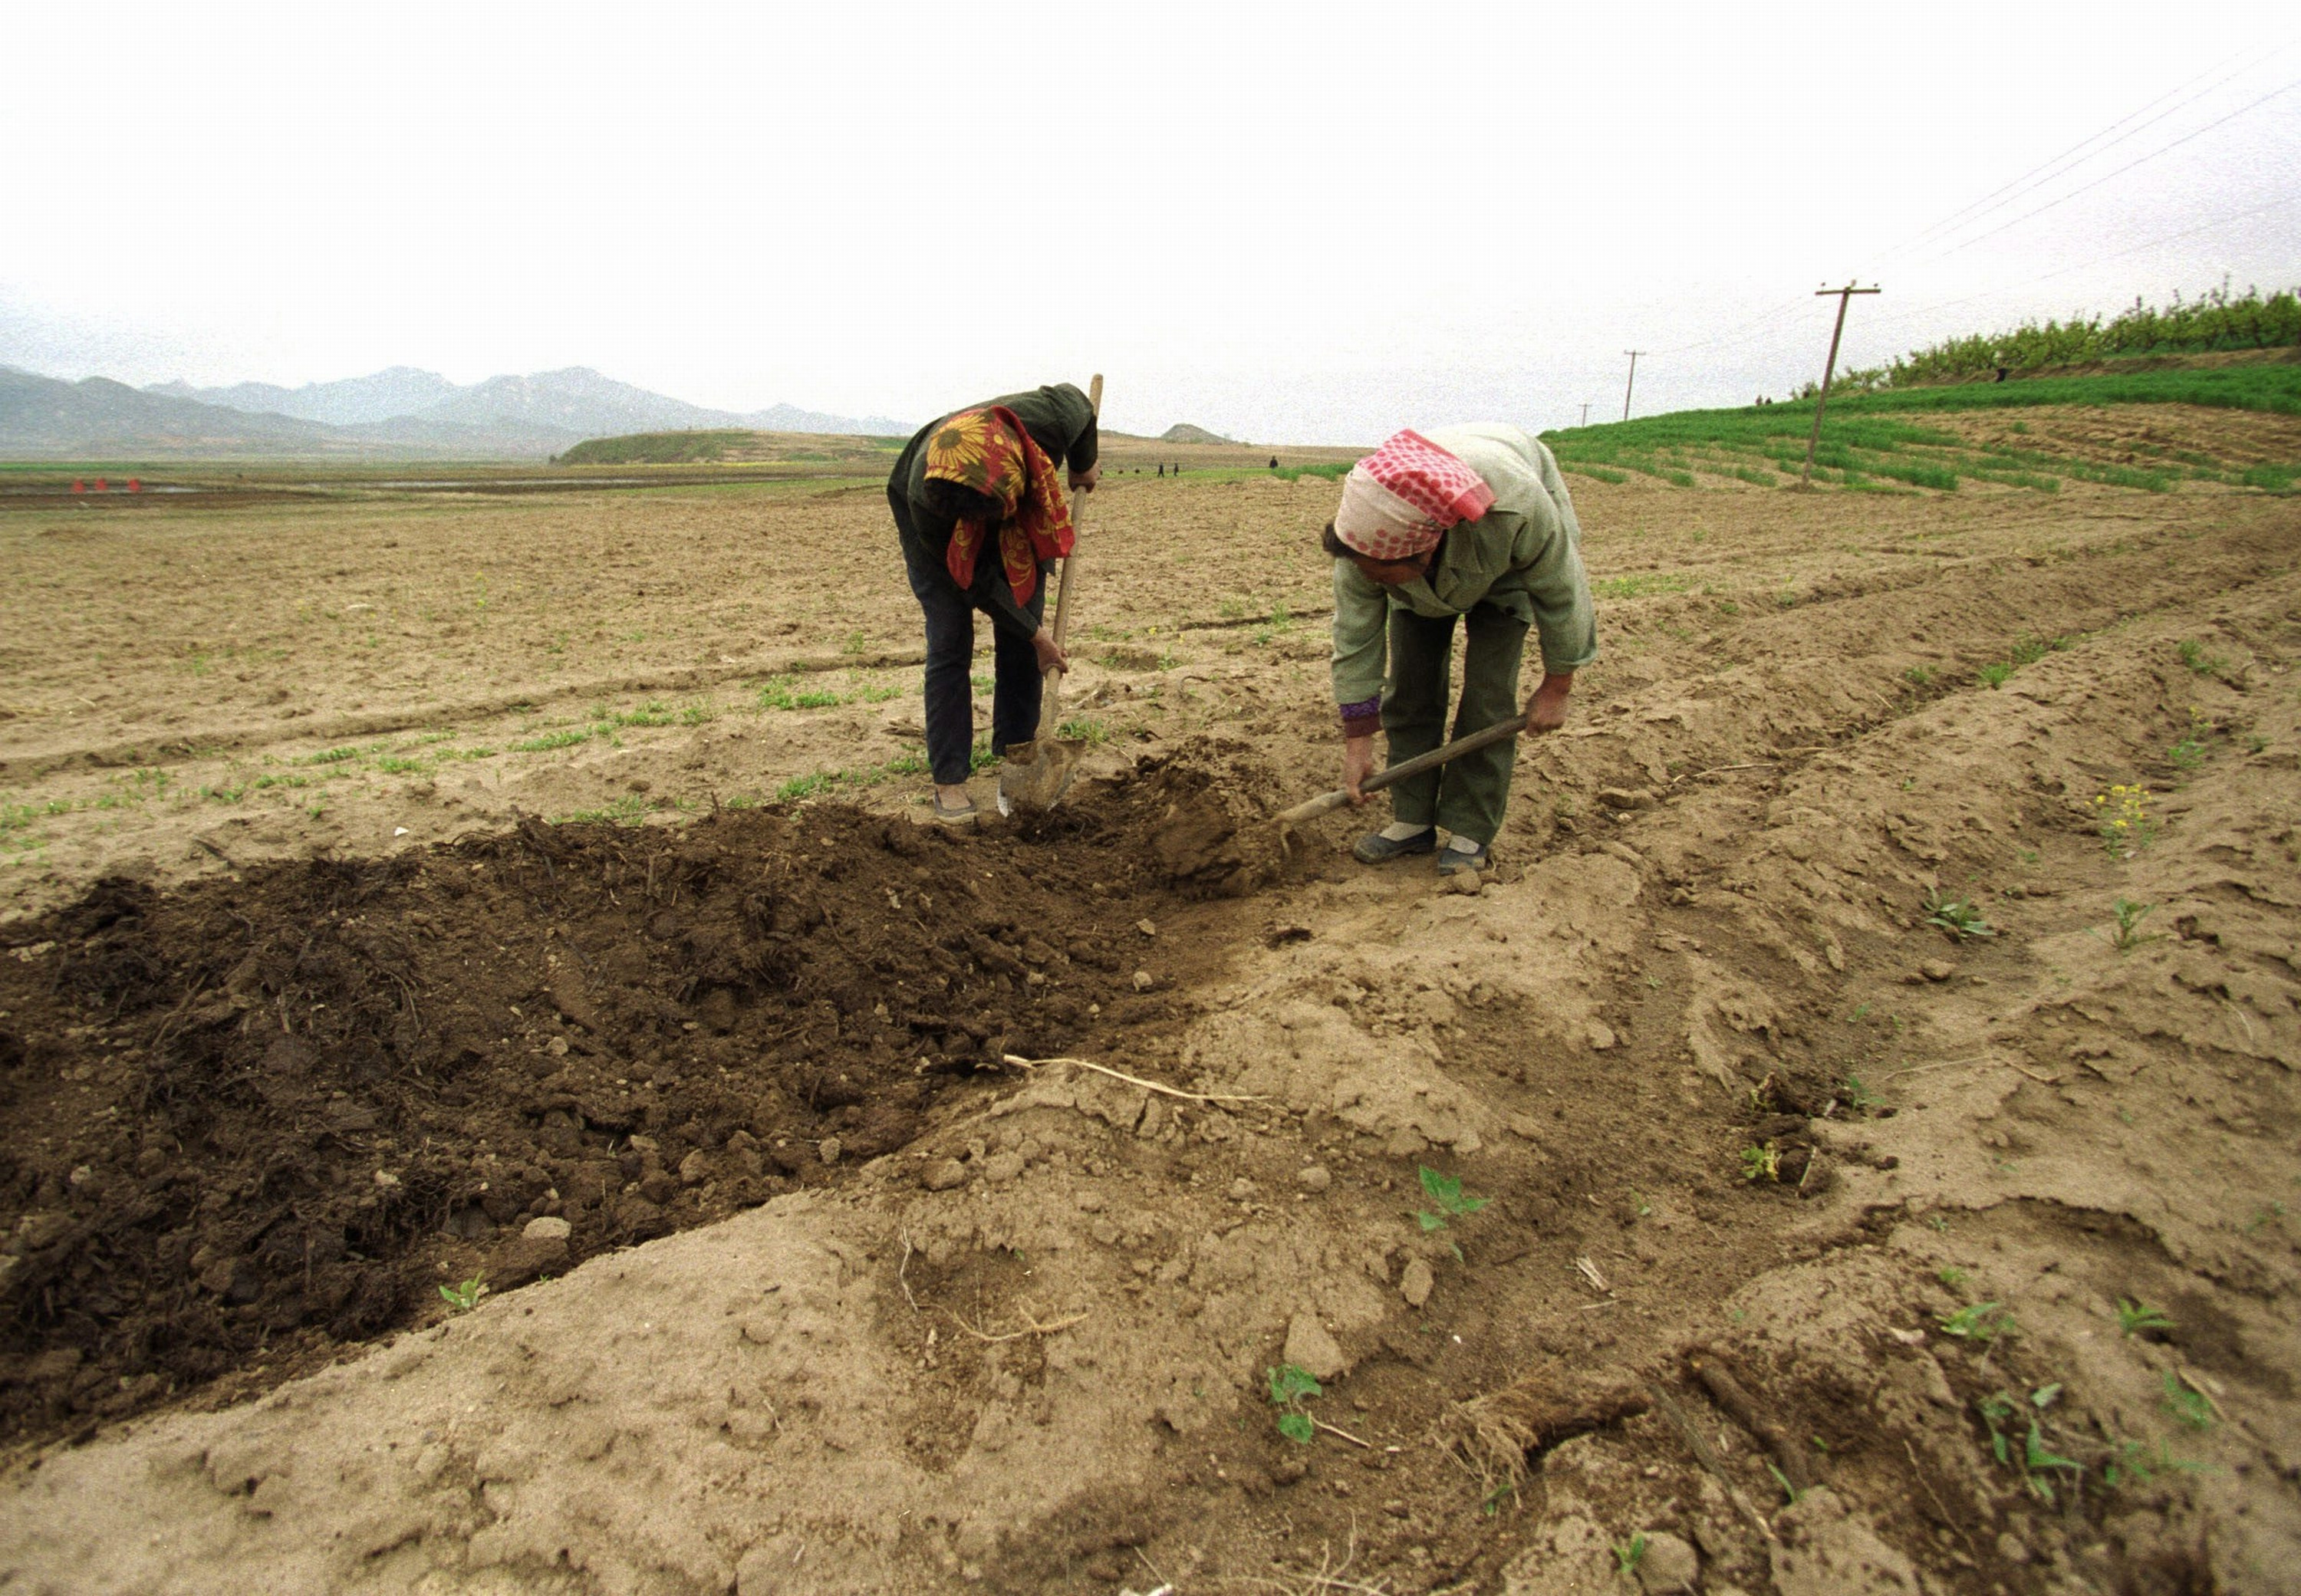 Women work in the fields in North Korea in this undated photograph.